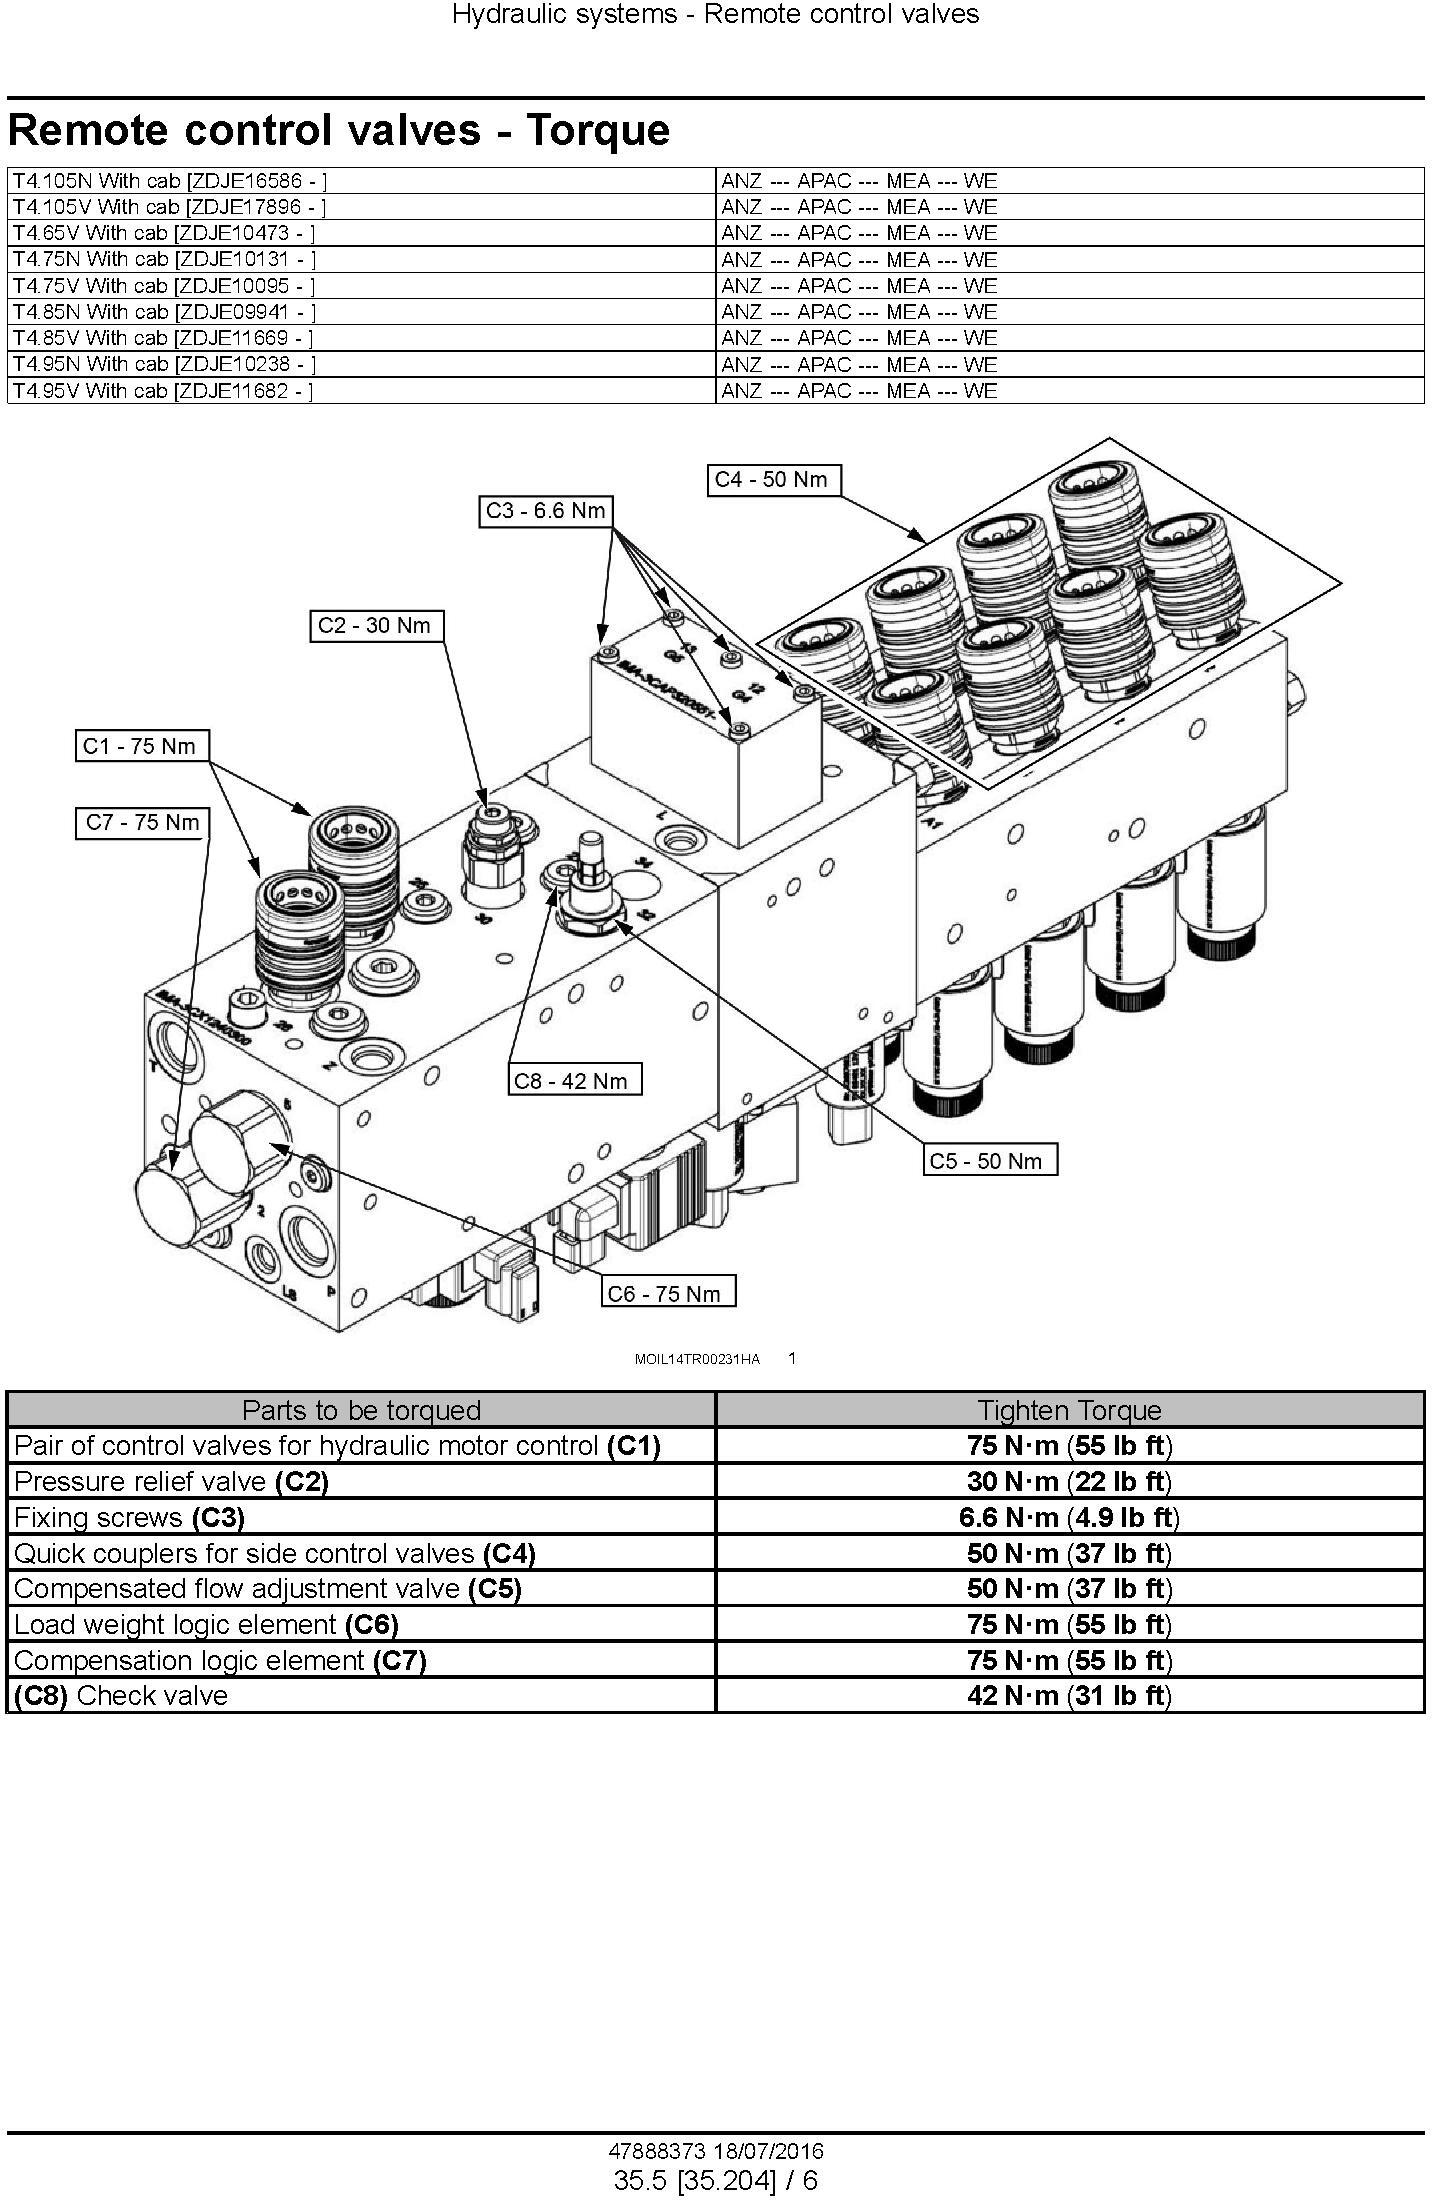 New Holland T4.75N T4.85N T4.95N T4.105N; T4.65V T4.75V T4.85V T4.95V T4.105V Tractor Service Manual - 3